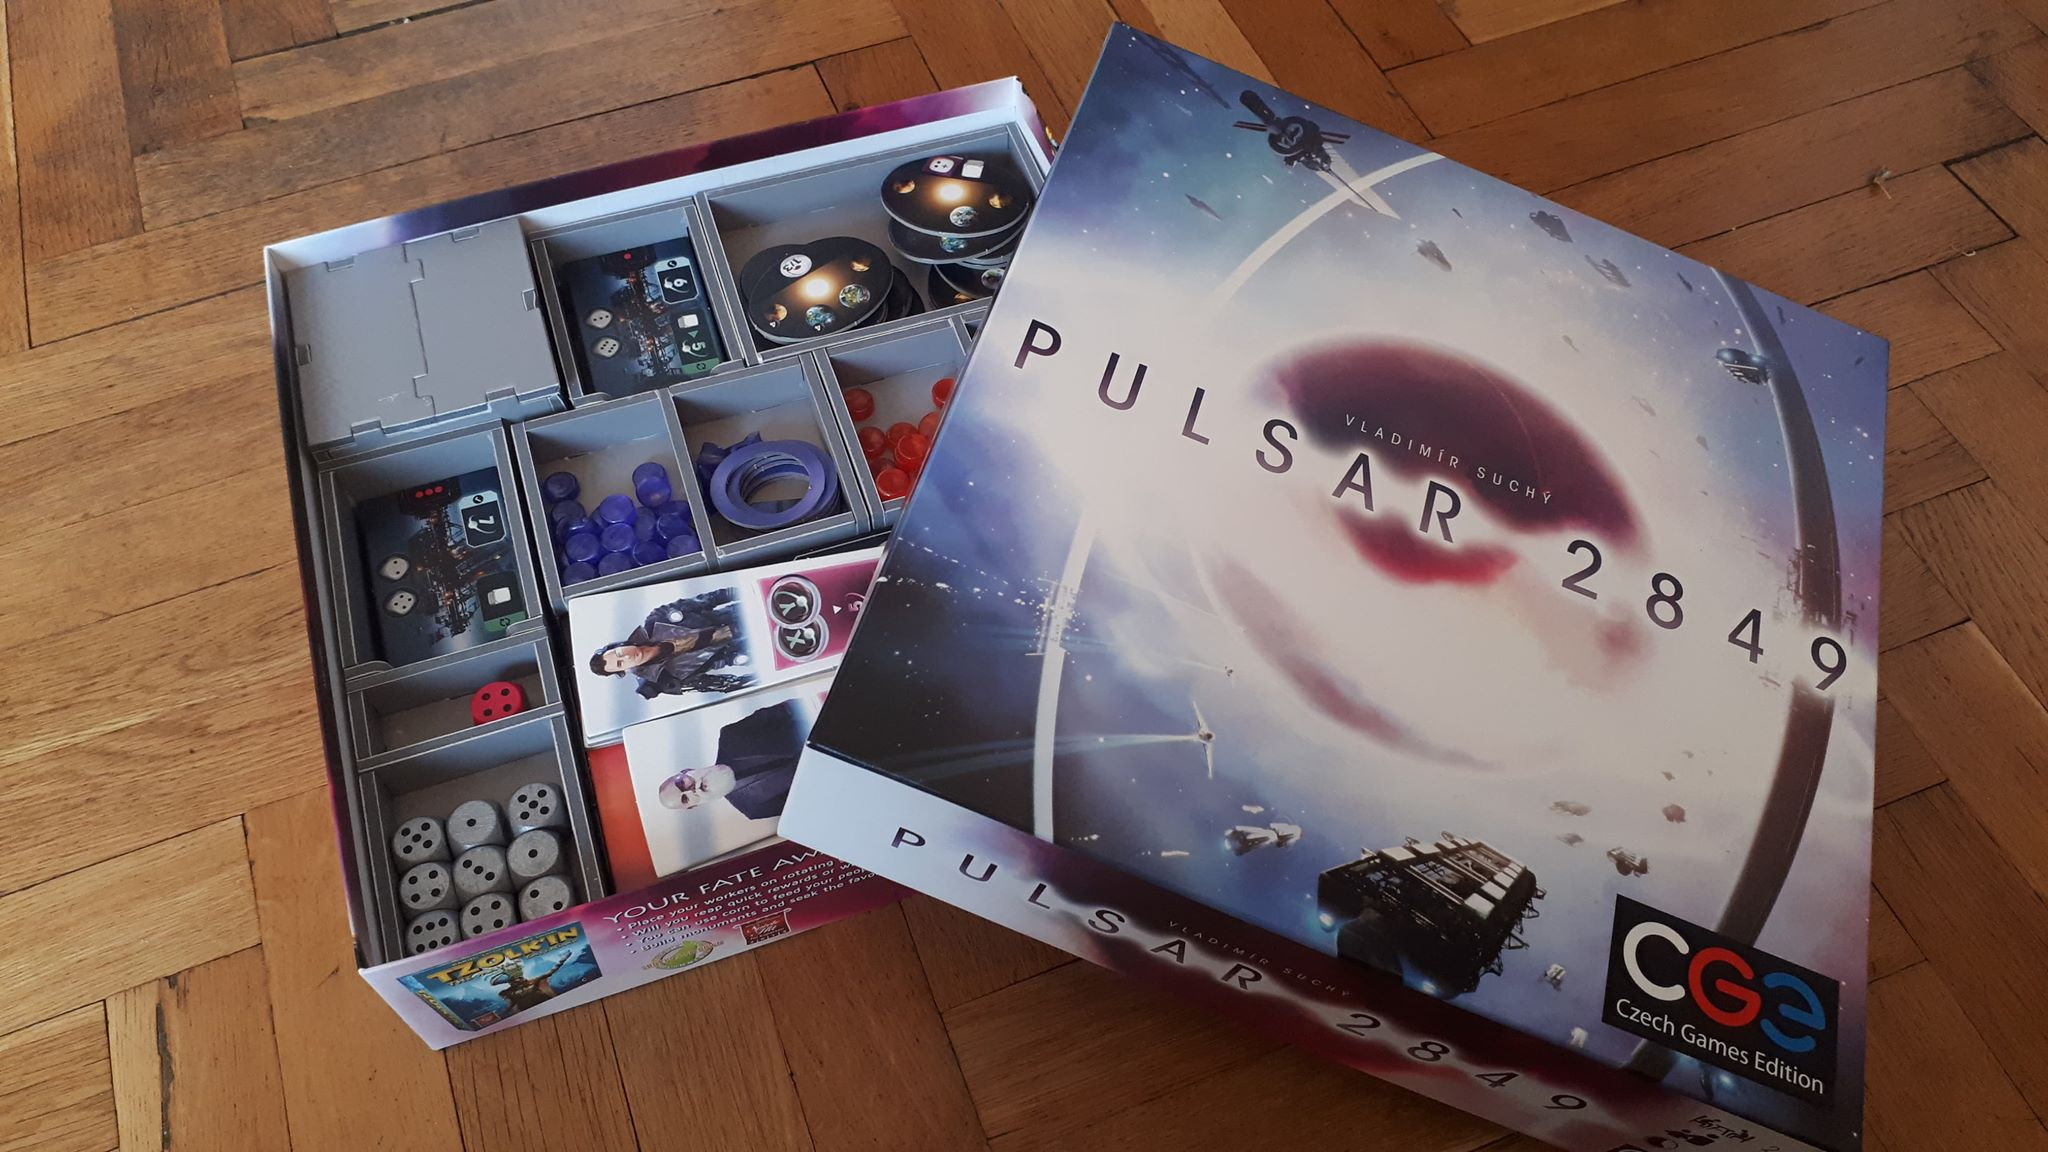 Folded Space – Pulsar 2849 Insert